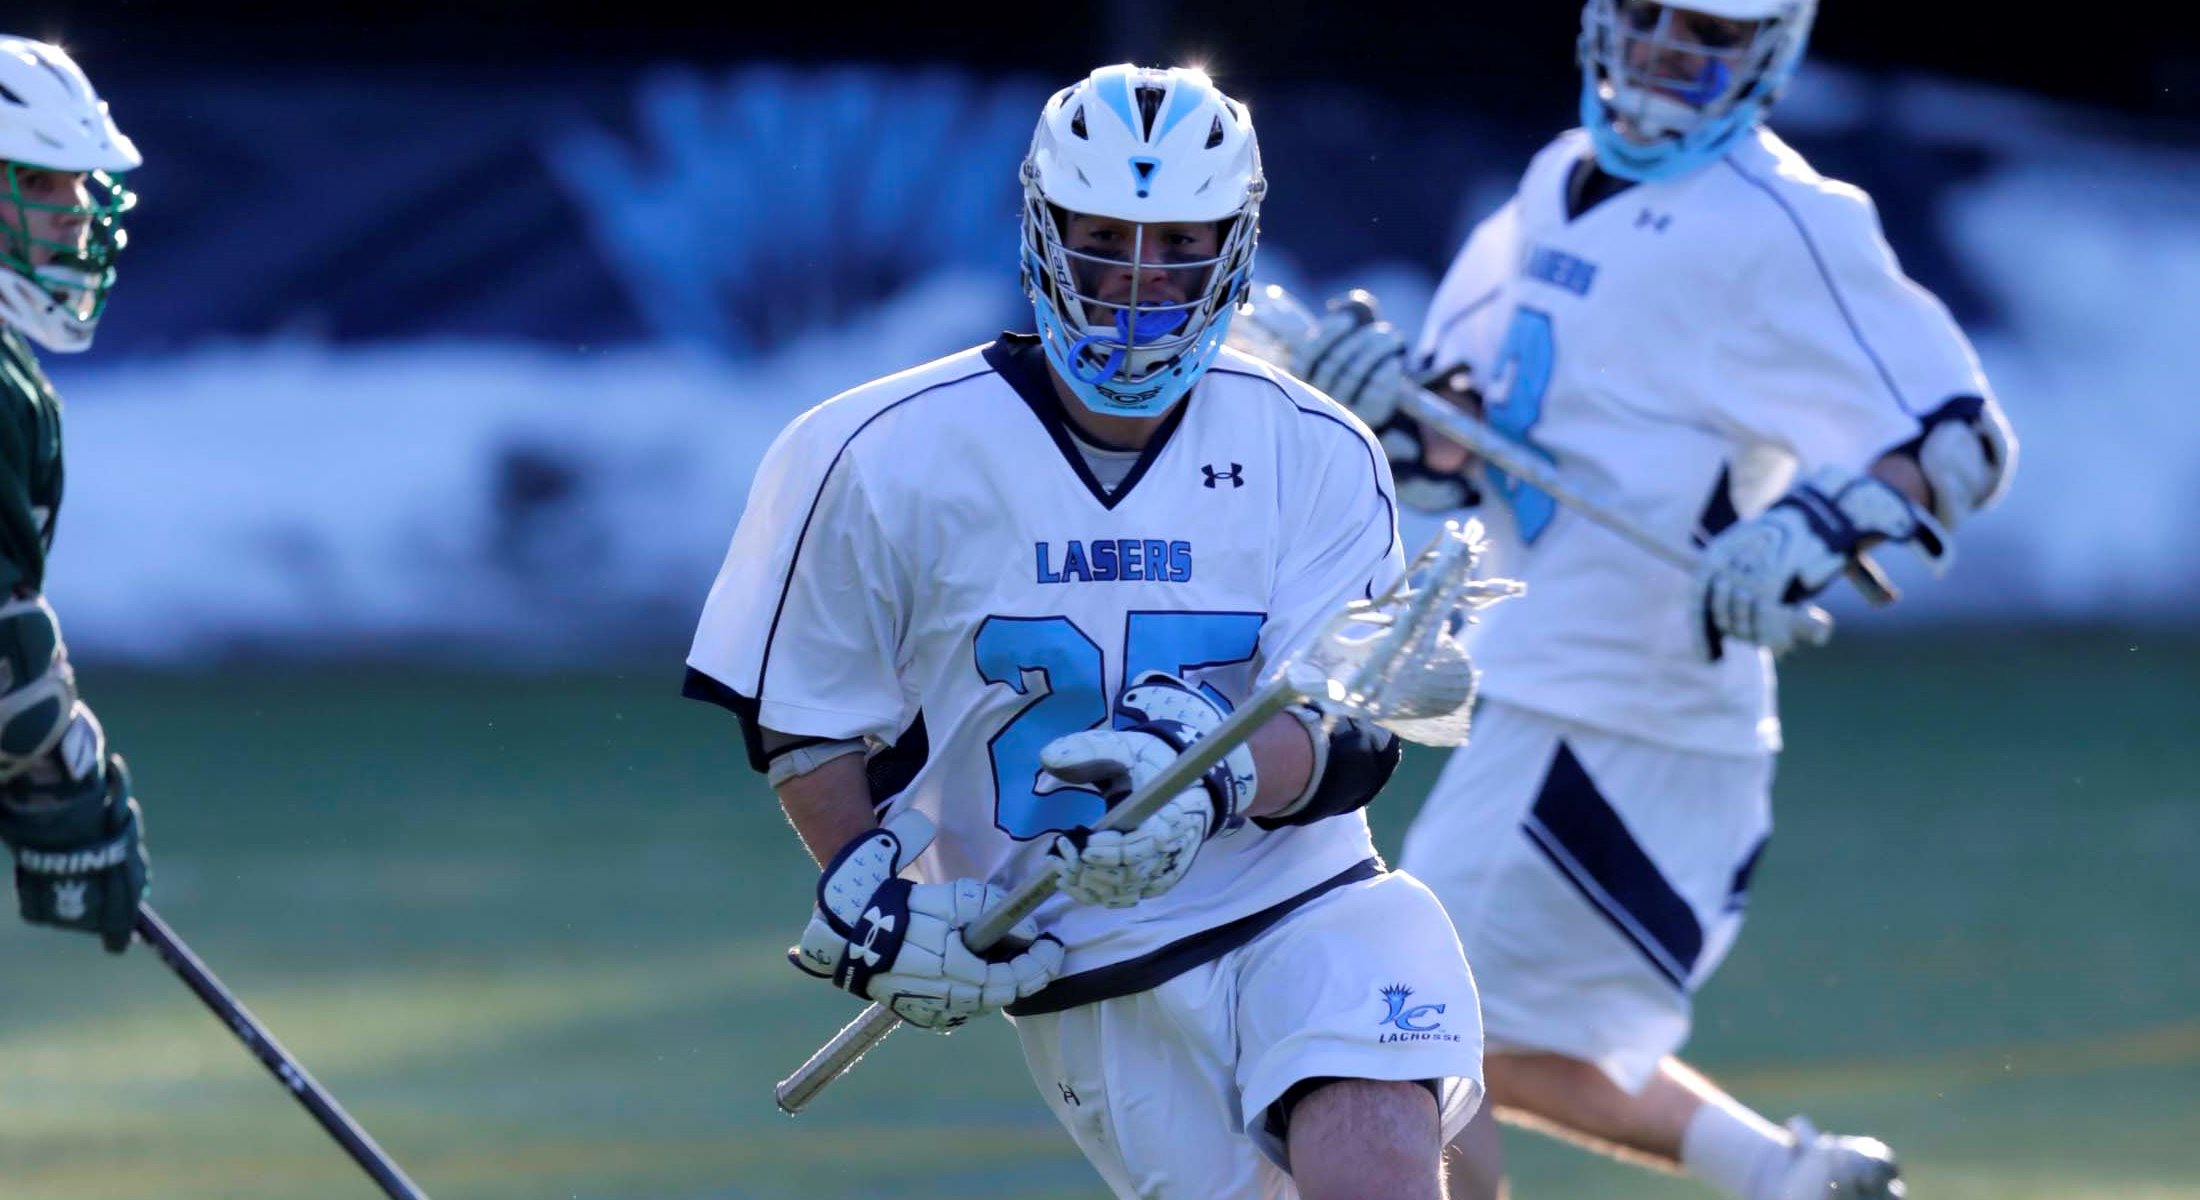 Men's Lacrosse Stays Perfect in GNAC Play with 20-7 victory at Daniel Webster